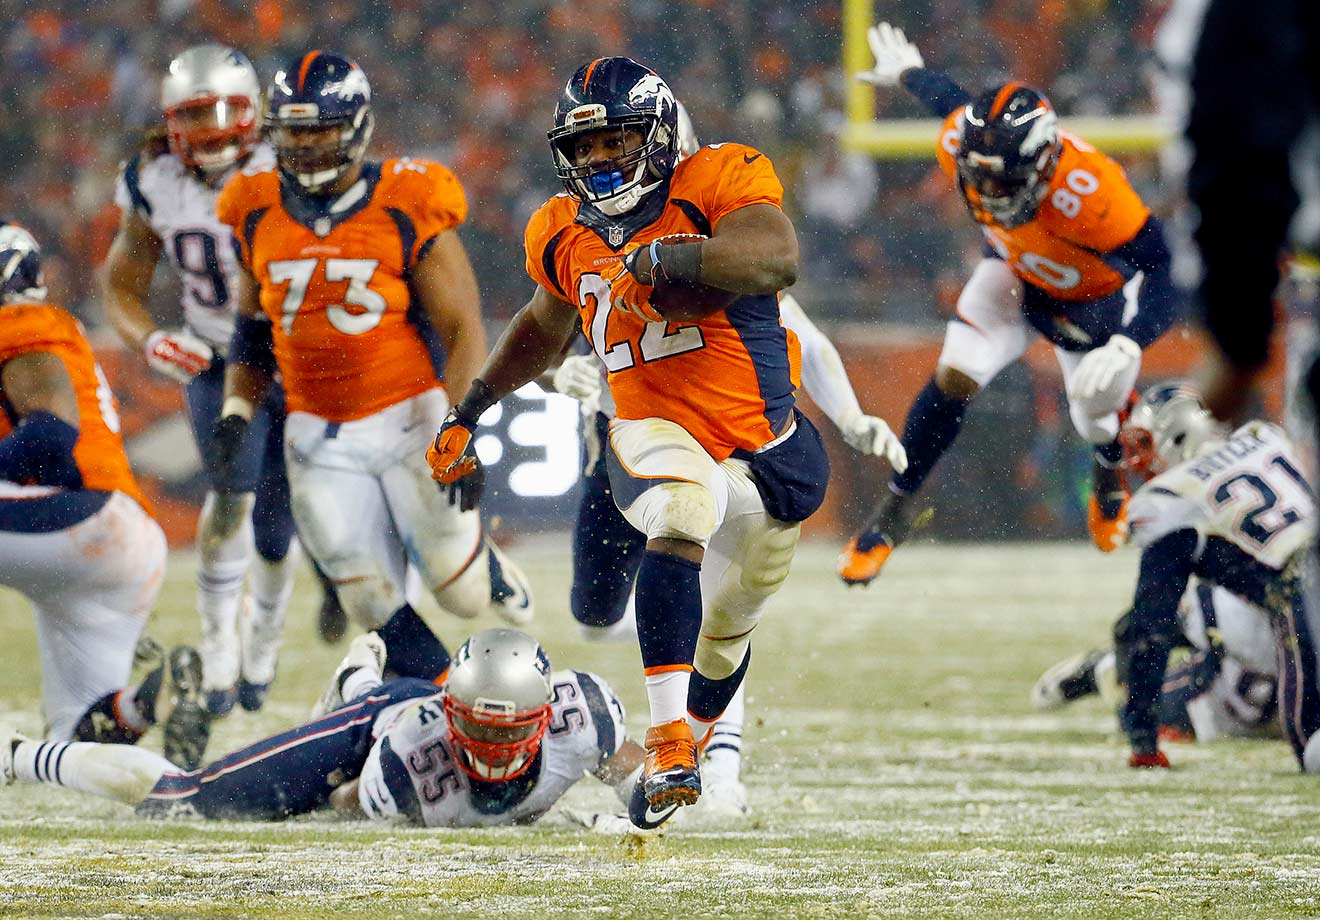 Osweiler held his own against Tom Brady and the New England Patriots, throwing for 270 yards, one touchdown and one interception. After falling in a 14-0 hole early in the second quarter, Denver relied on its running game to chip away at the Patriots' lead. With a 1:09 left, Osweiler connected with receiver Andre Caldwell to give the Broncos a three-point lead. But the Patriots tied it as time expired on a Stephen Gostkowski field goal, sending it to overtime. In the extra period, Anderson won the game for the Broncos on a 48-yard touchdown scamper.